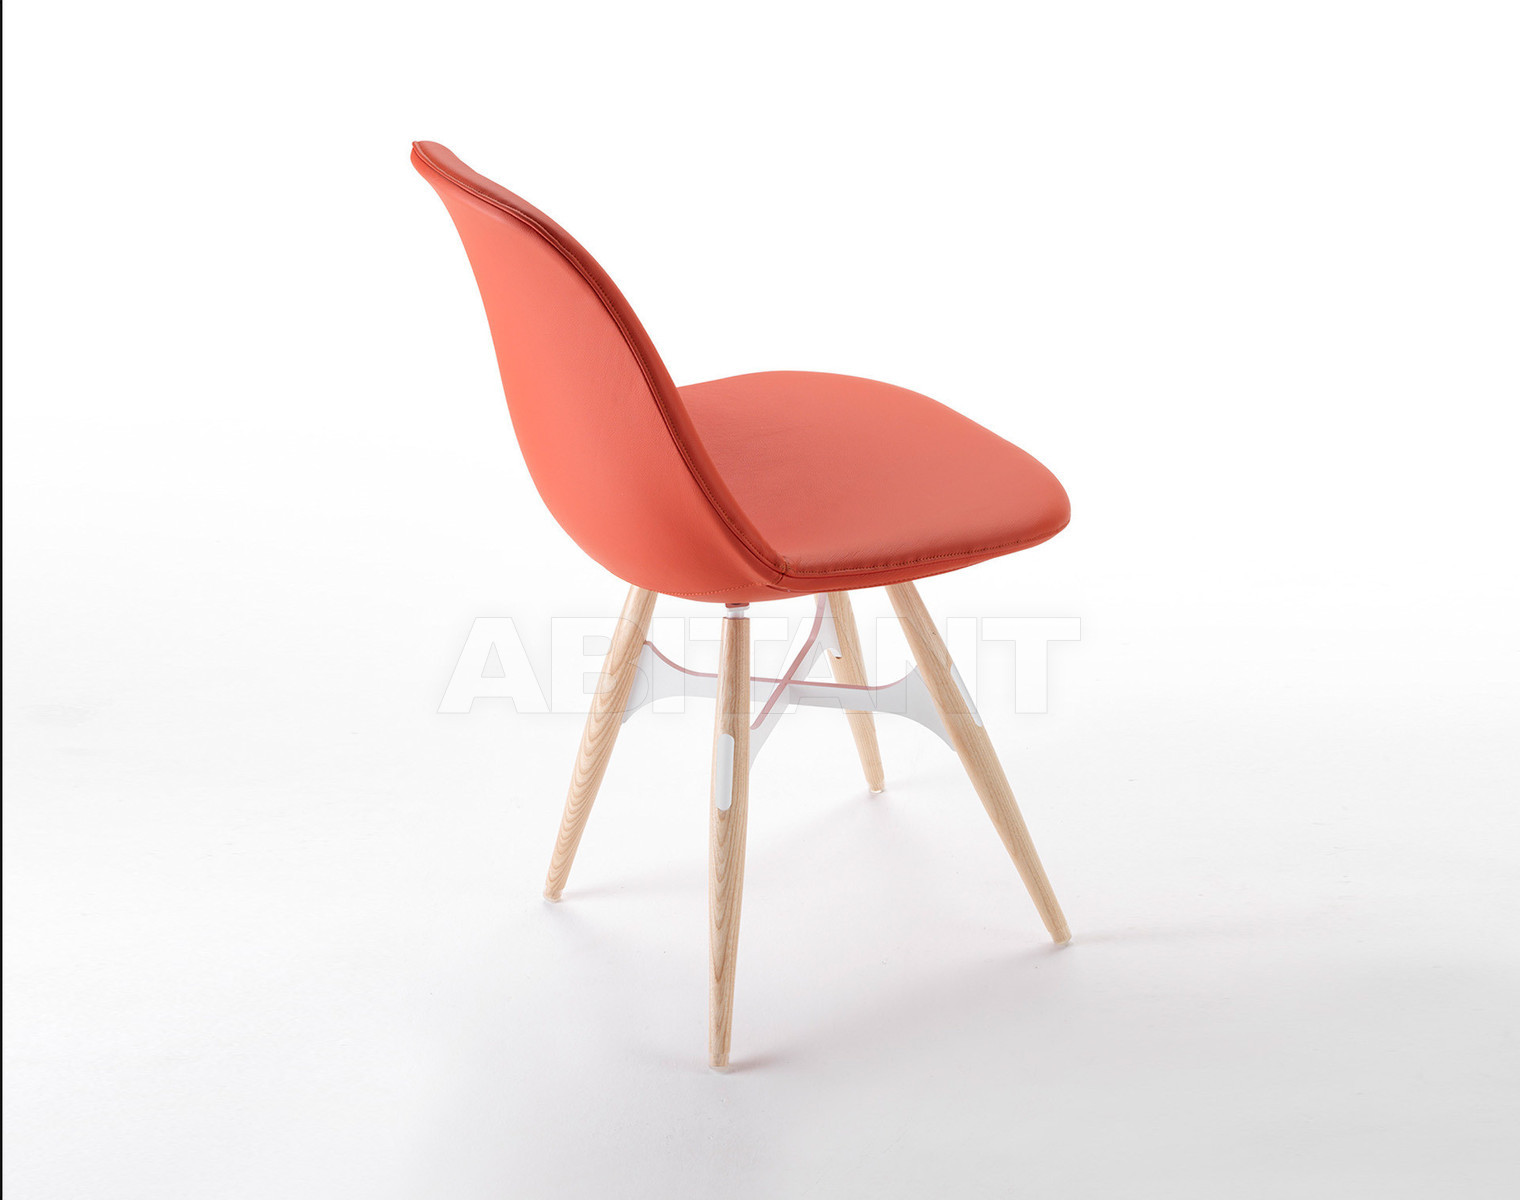 Купить Стул Kubikoff Sander Mulder ZigZag'POP'Chair' 02